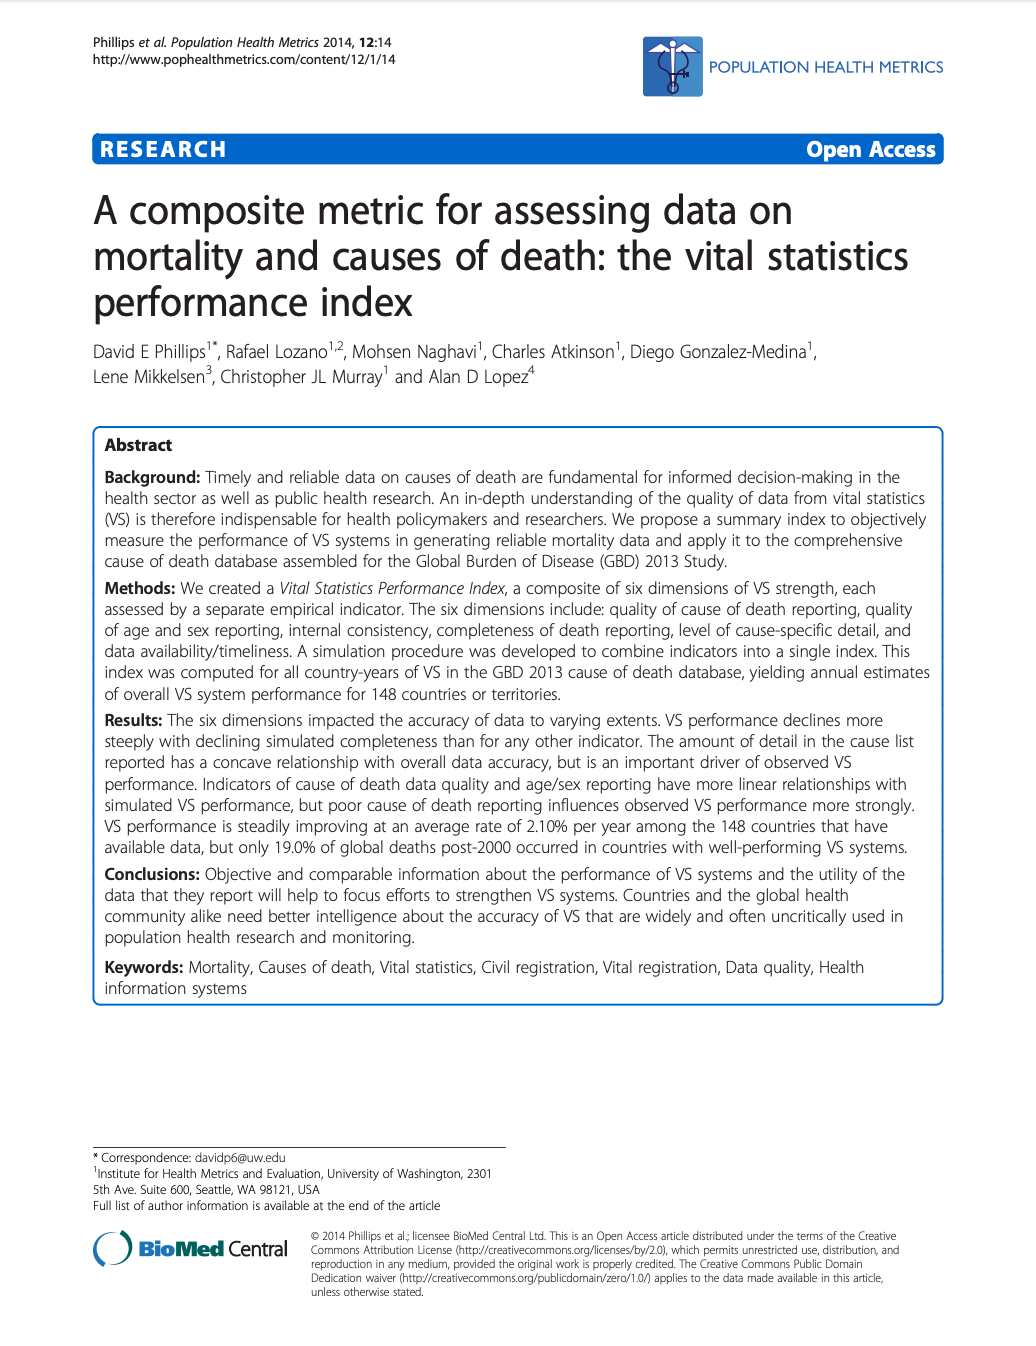 A composite metric for assessing data on